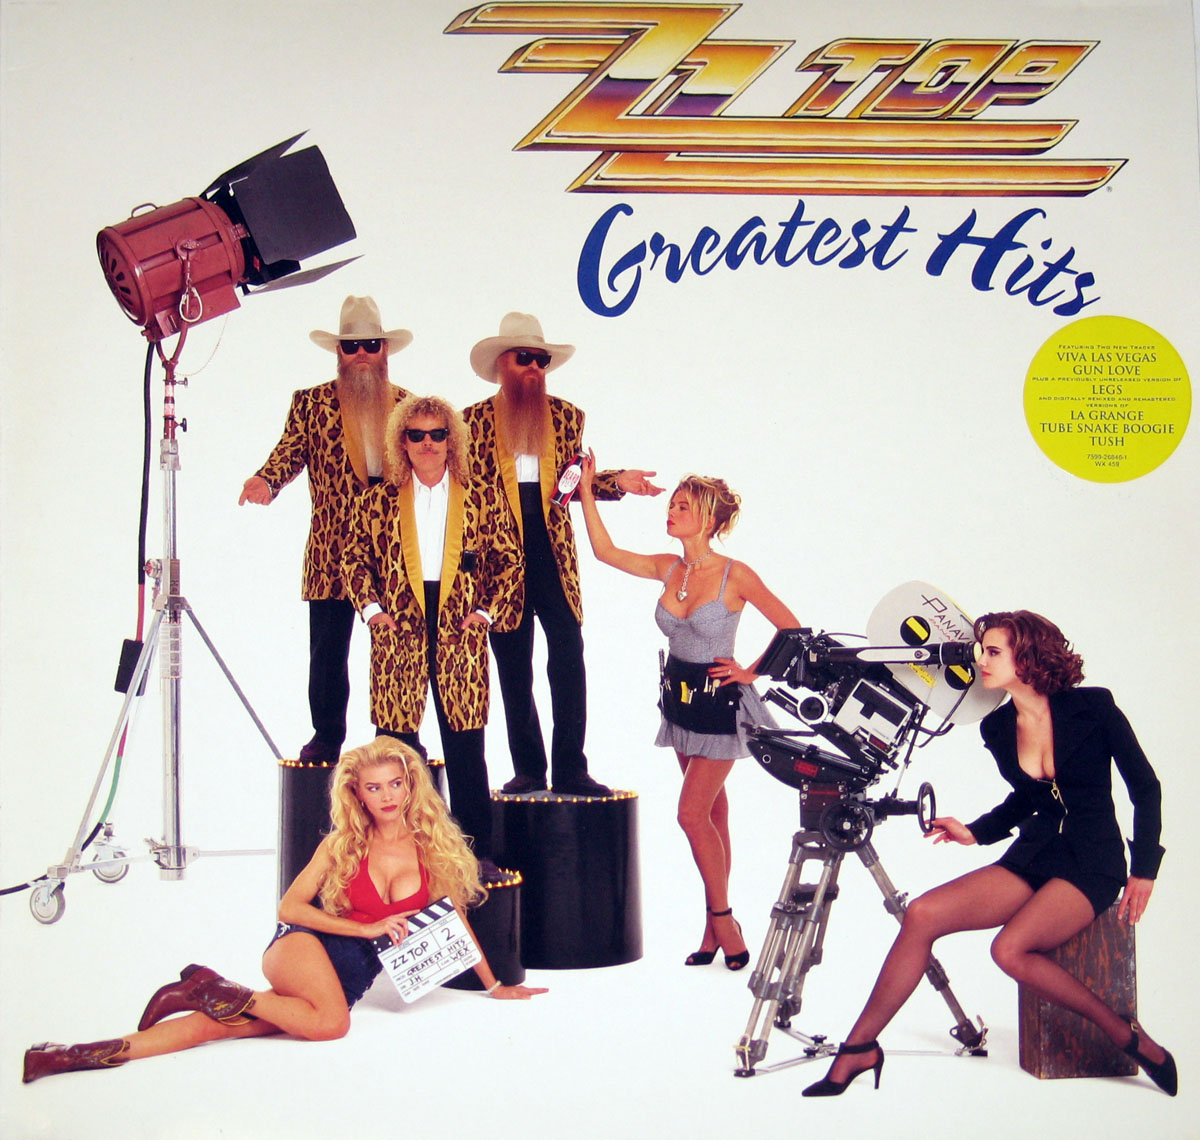 High Resolution Photos of zz top greatest hits